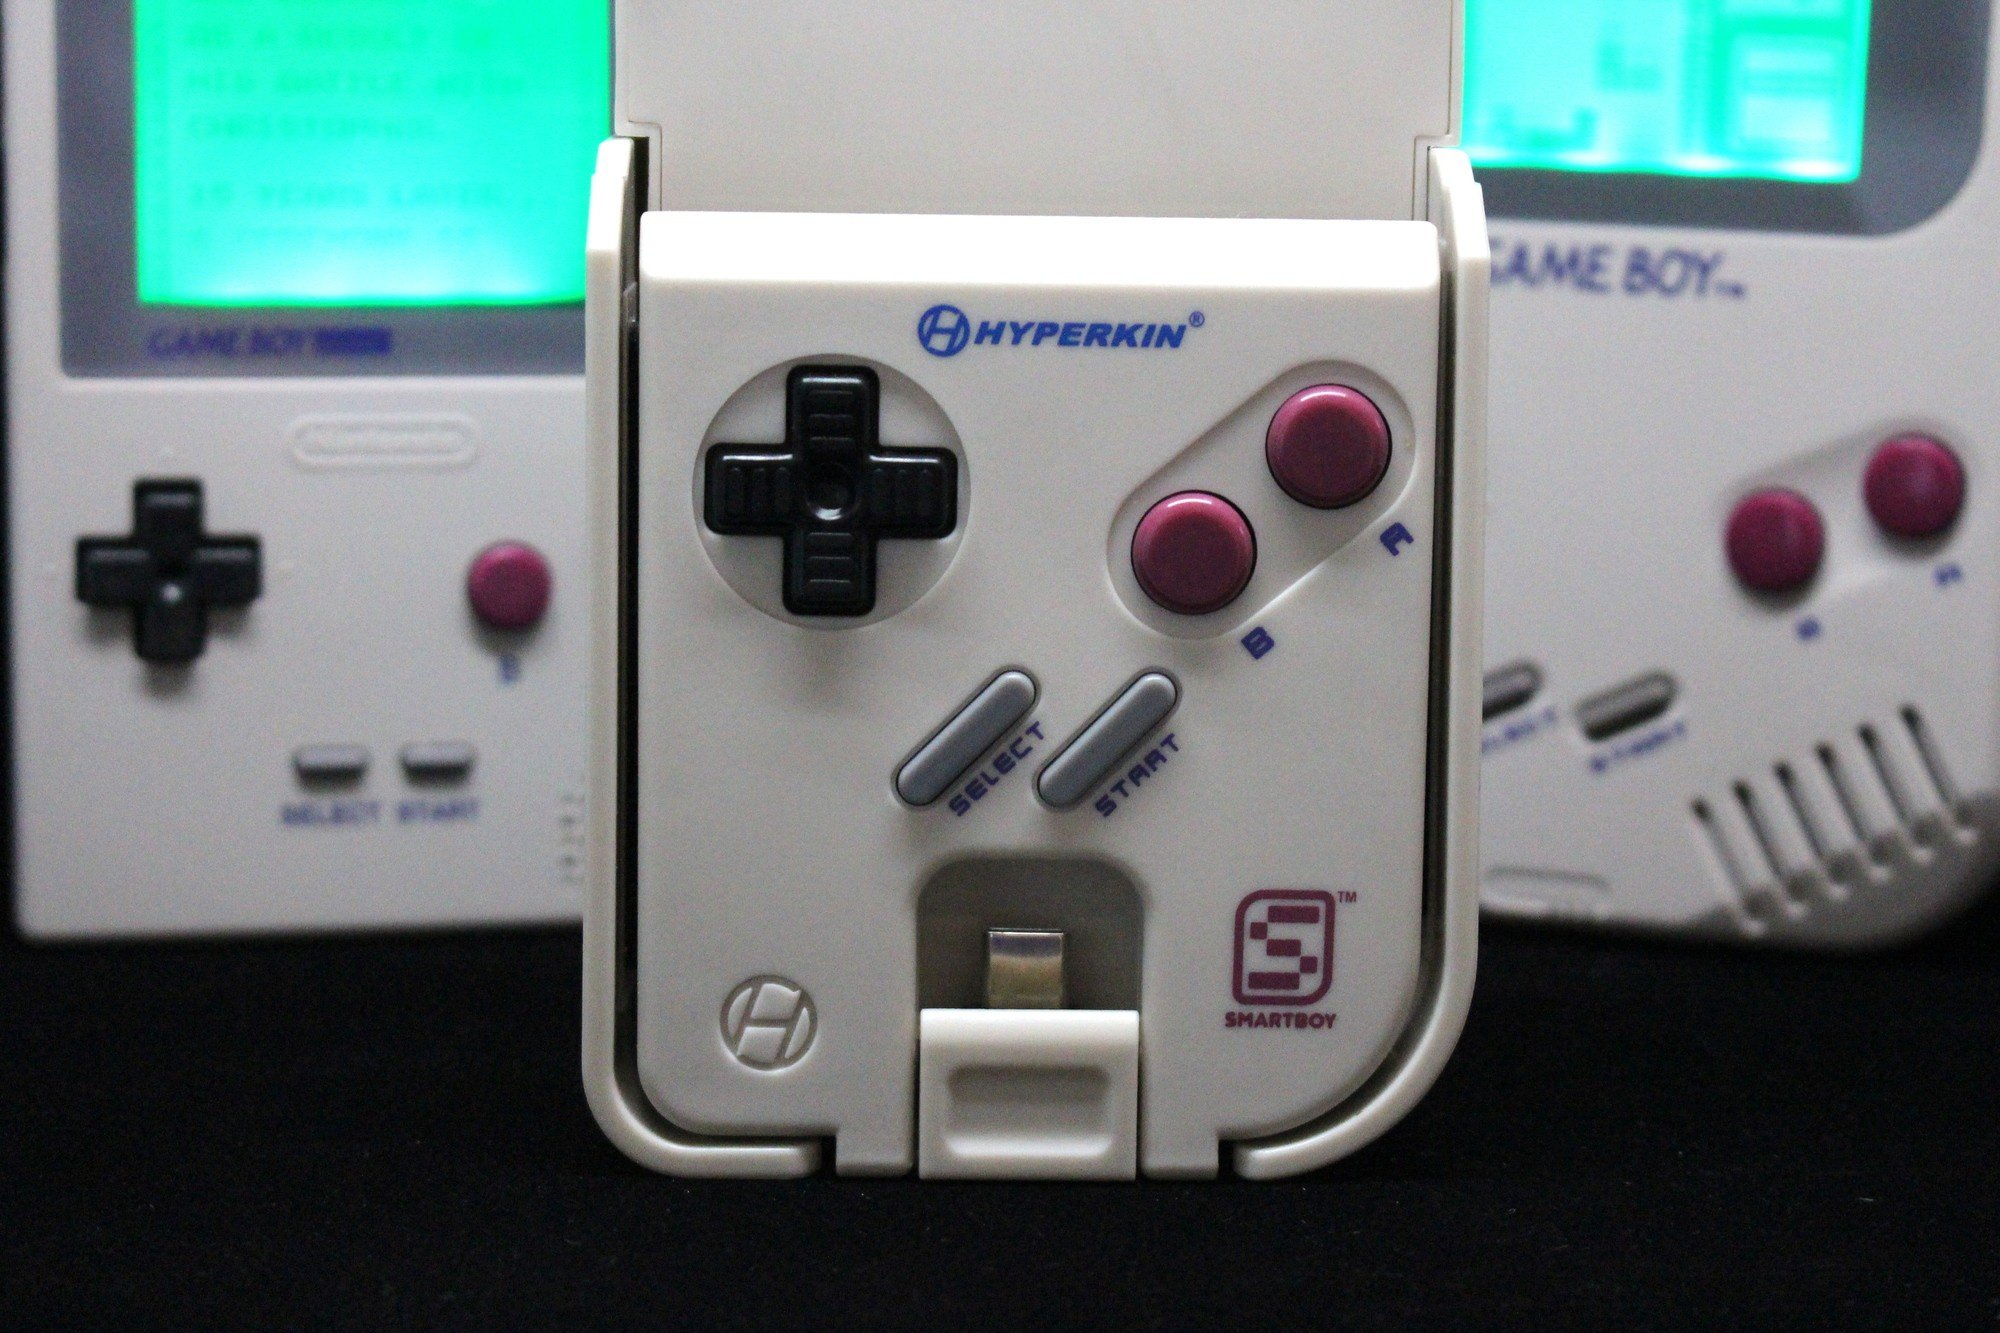 Hardware Review Hyperkin SmartBoy Turns Your Smartphone Into A - Hyperkin smartphone gameboy